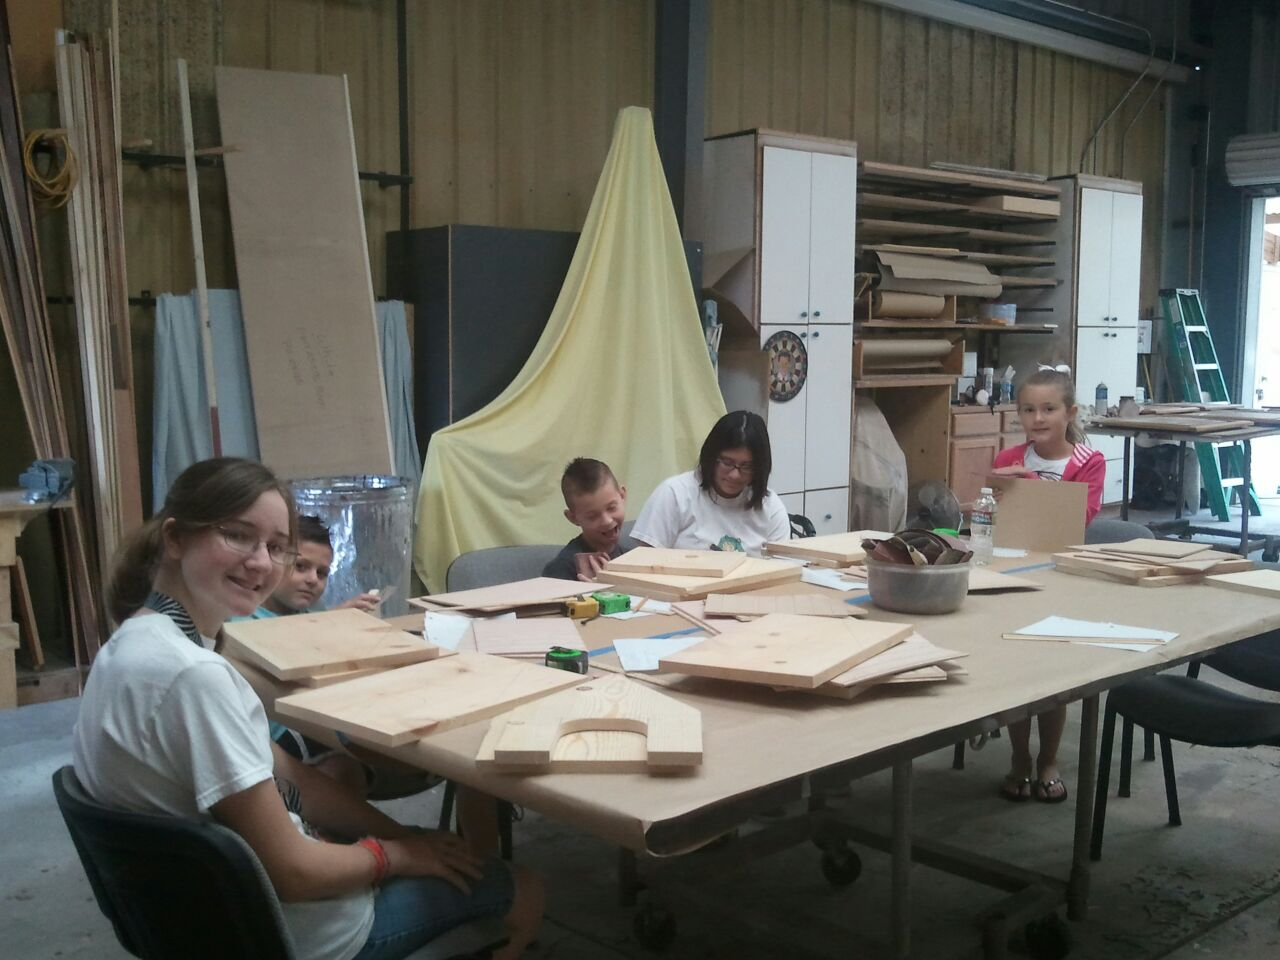 woodworking classes this week